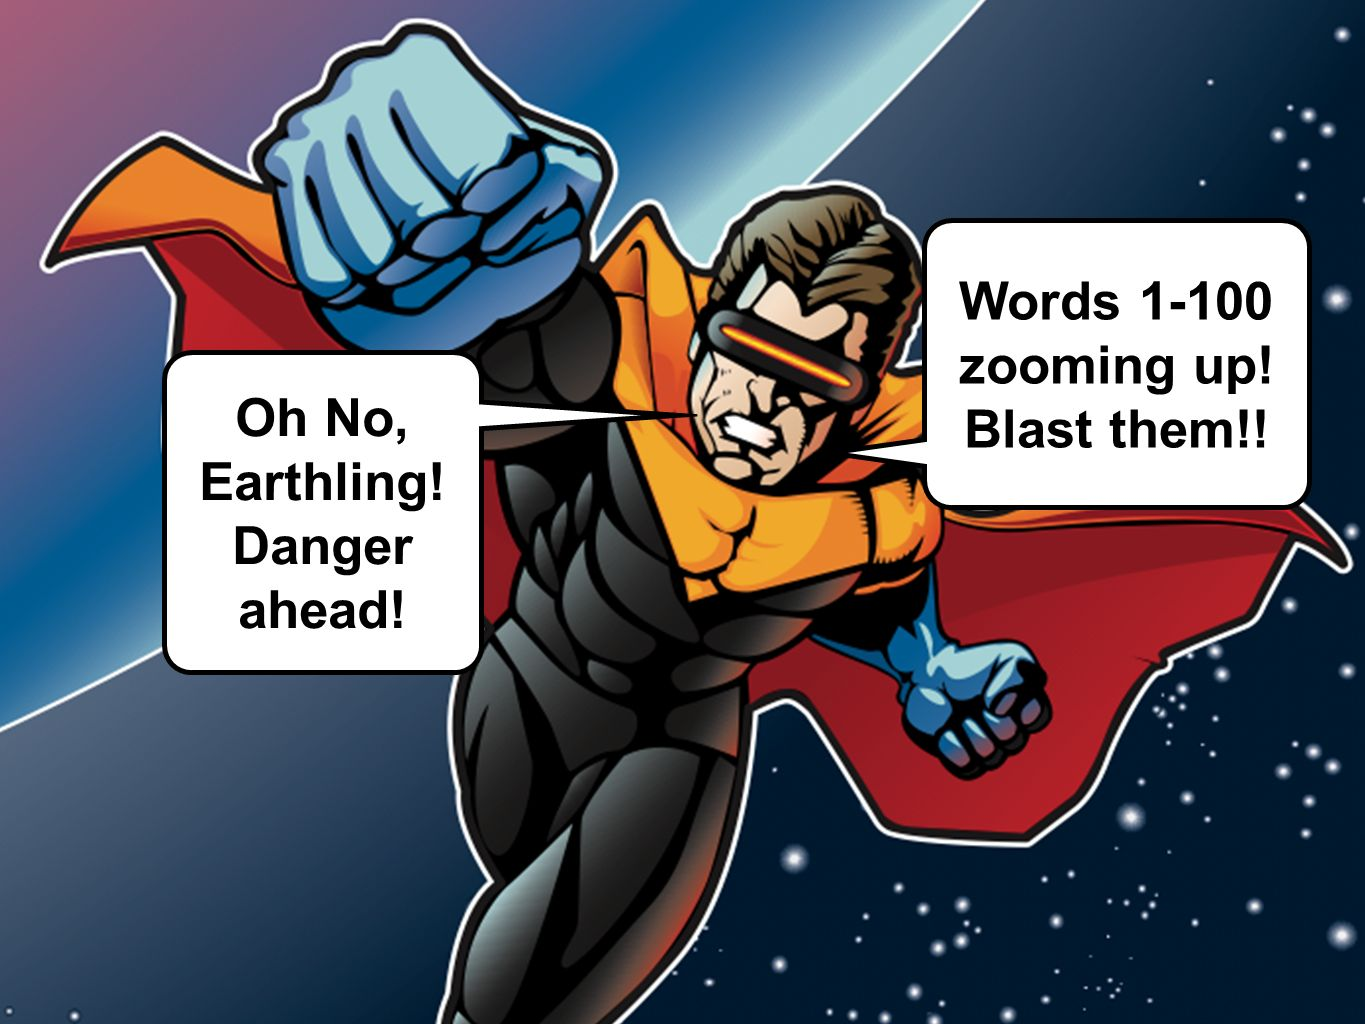 Words 1-100 zooming up! Blast them!! Oh No, Earthling! Danger ahead!